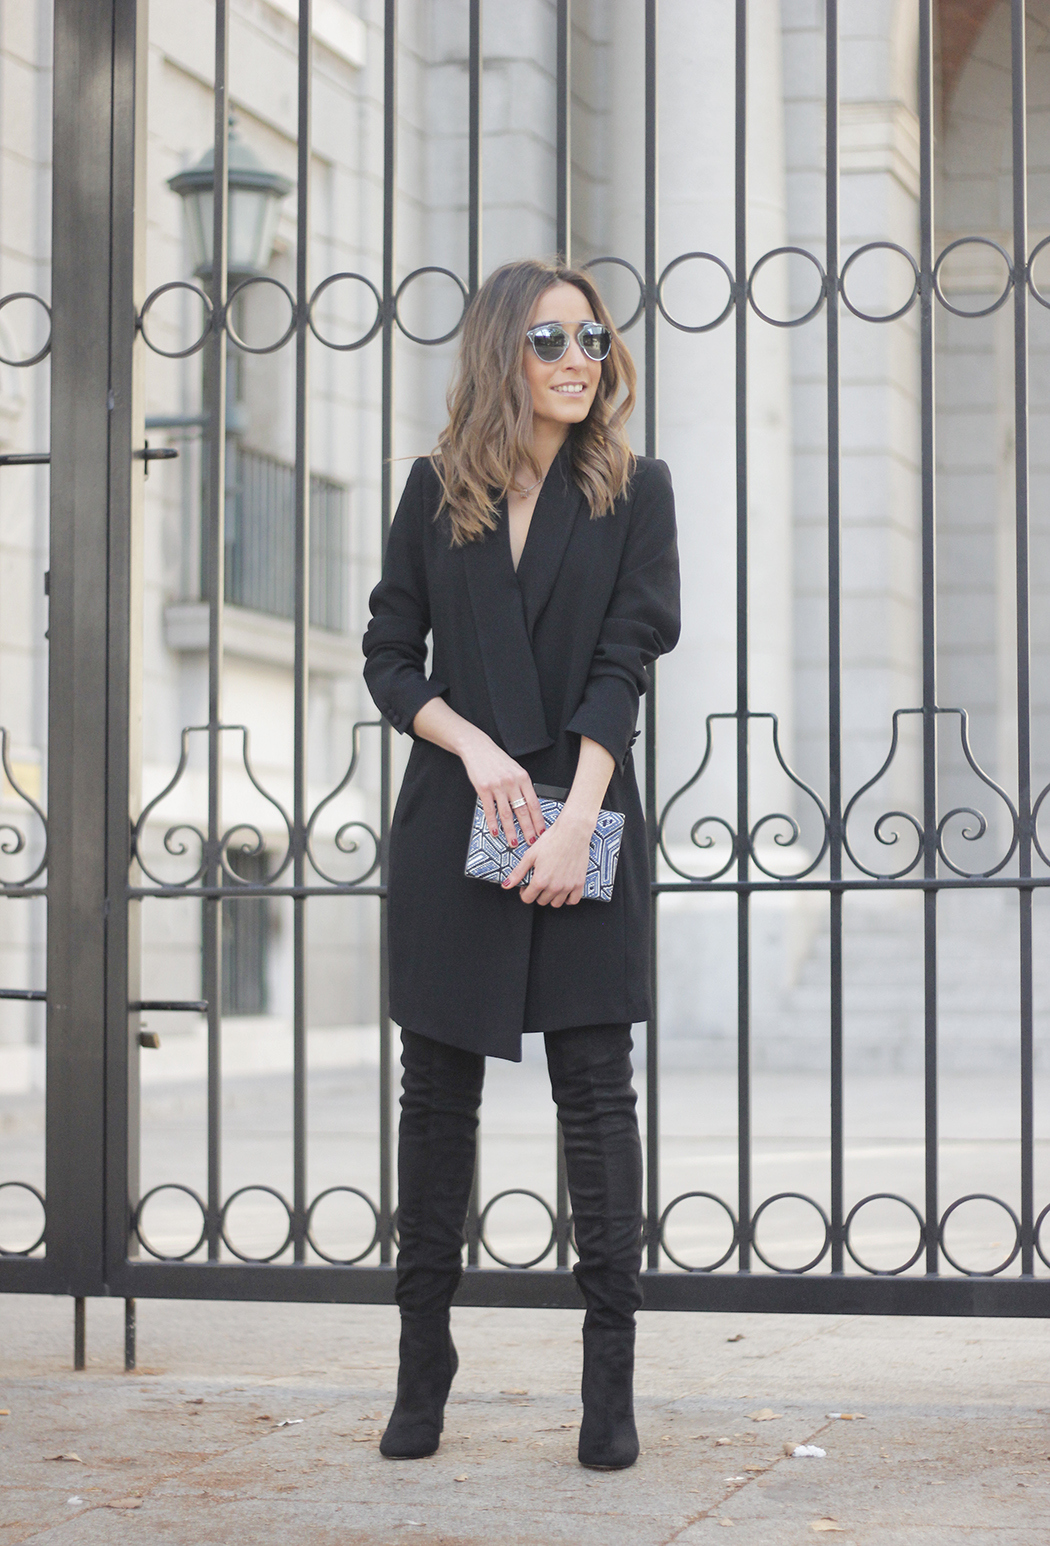 BLack Tuxedo dress black over the knee boots dior so real sunnies bulgary jewellery09